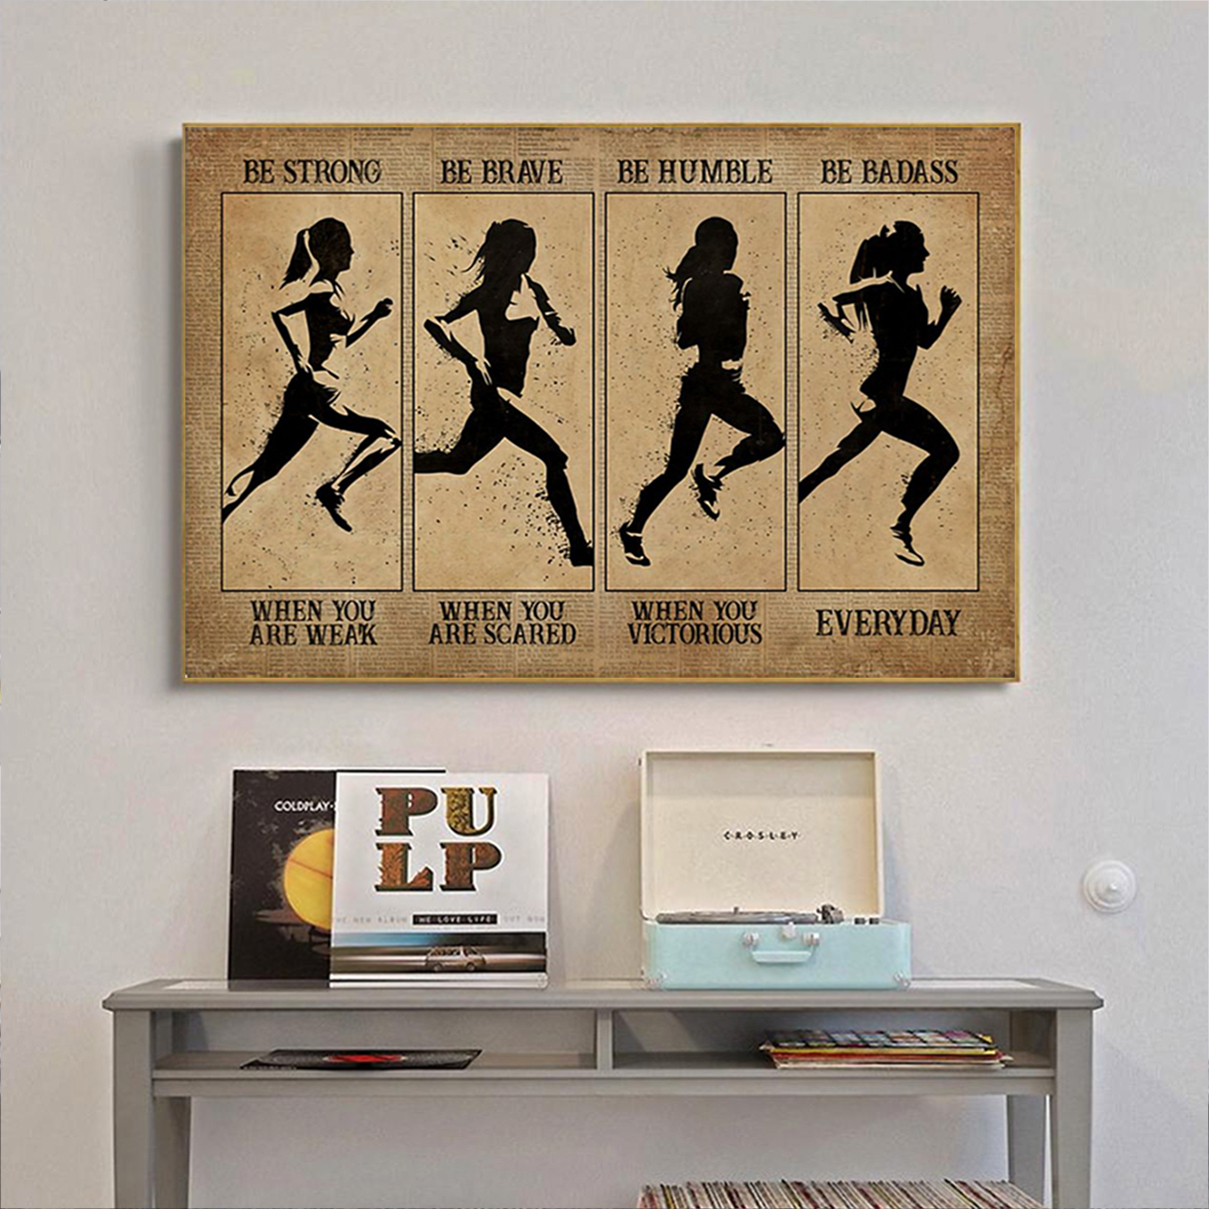 Marathon woman be strong be brave be humble be badass poster A1